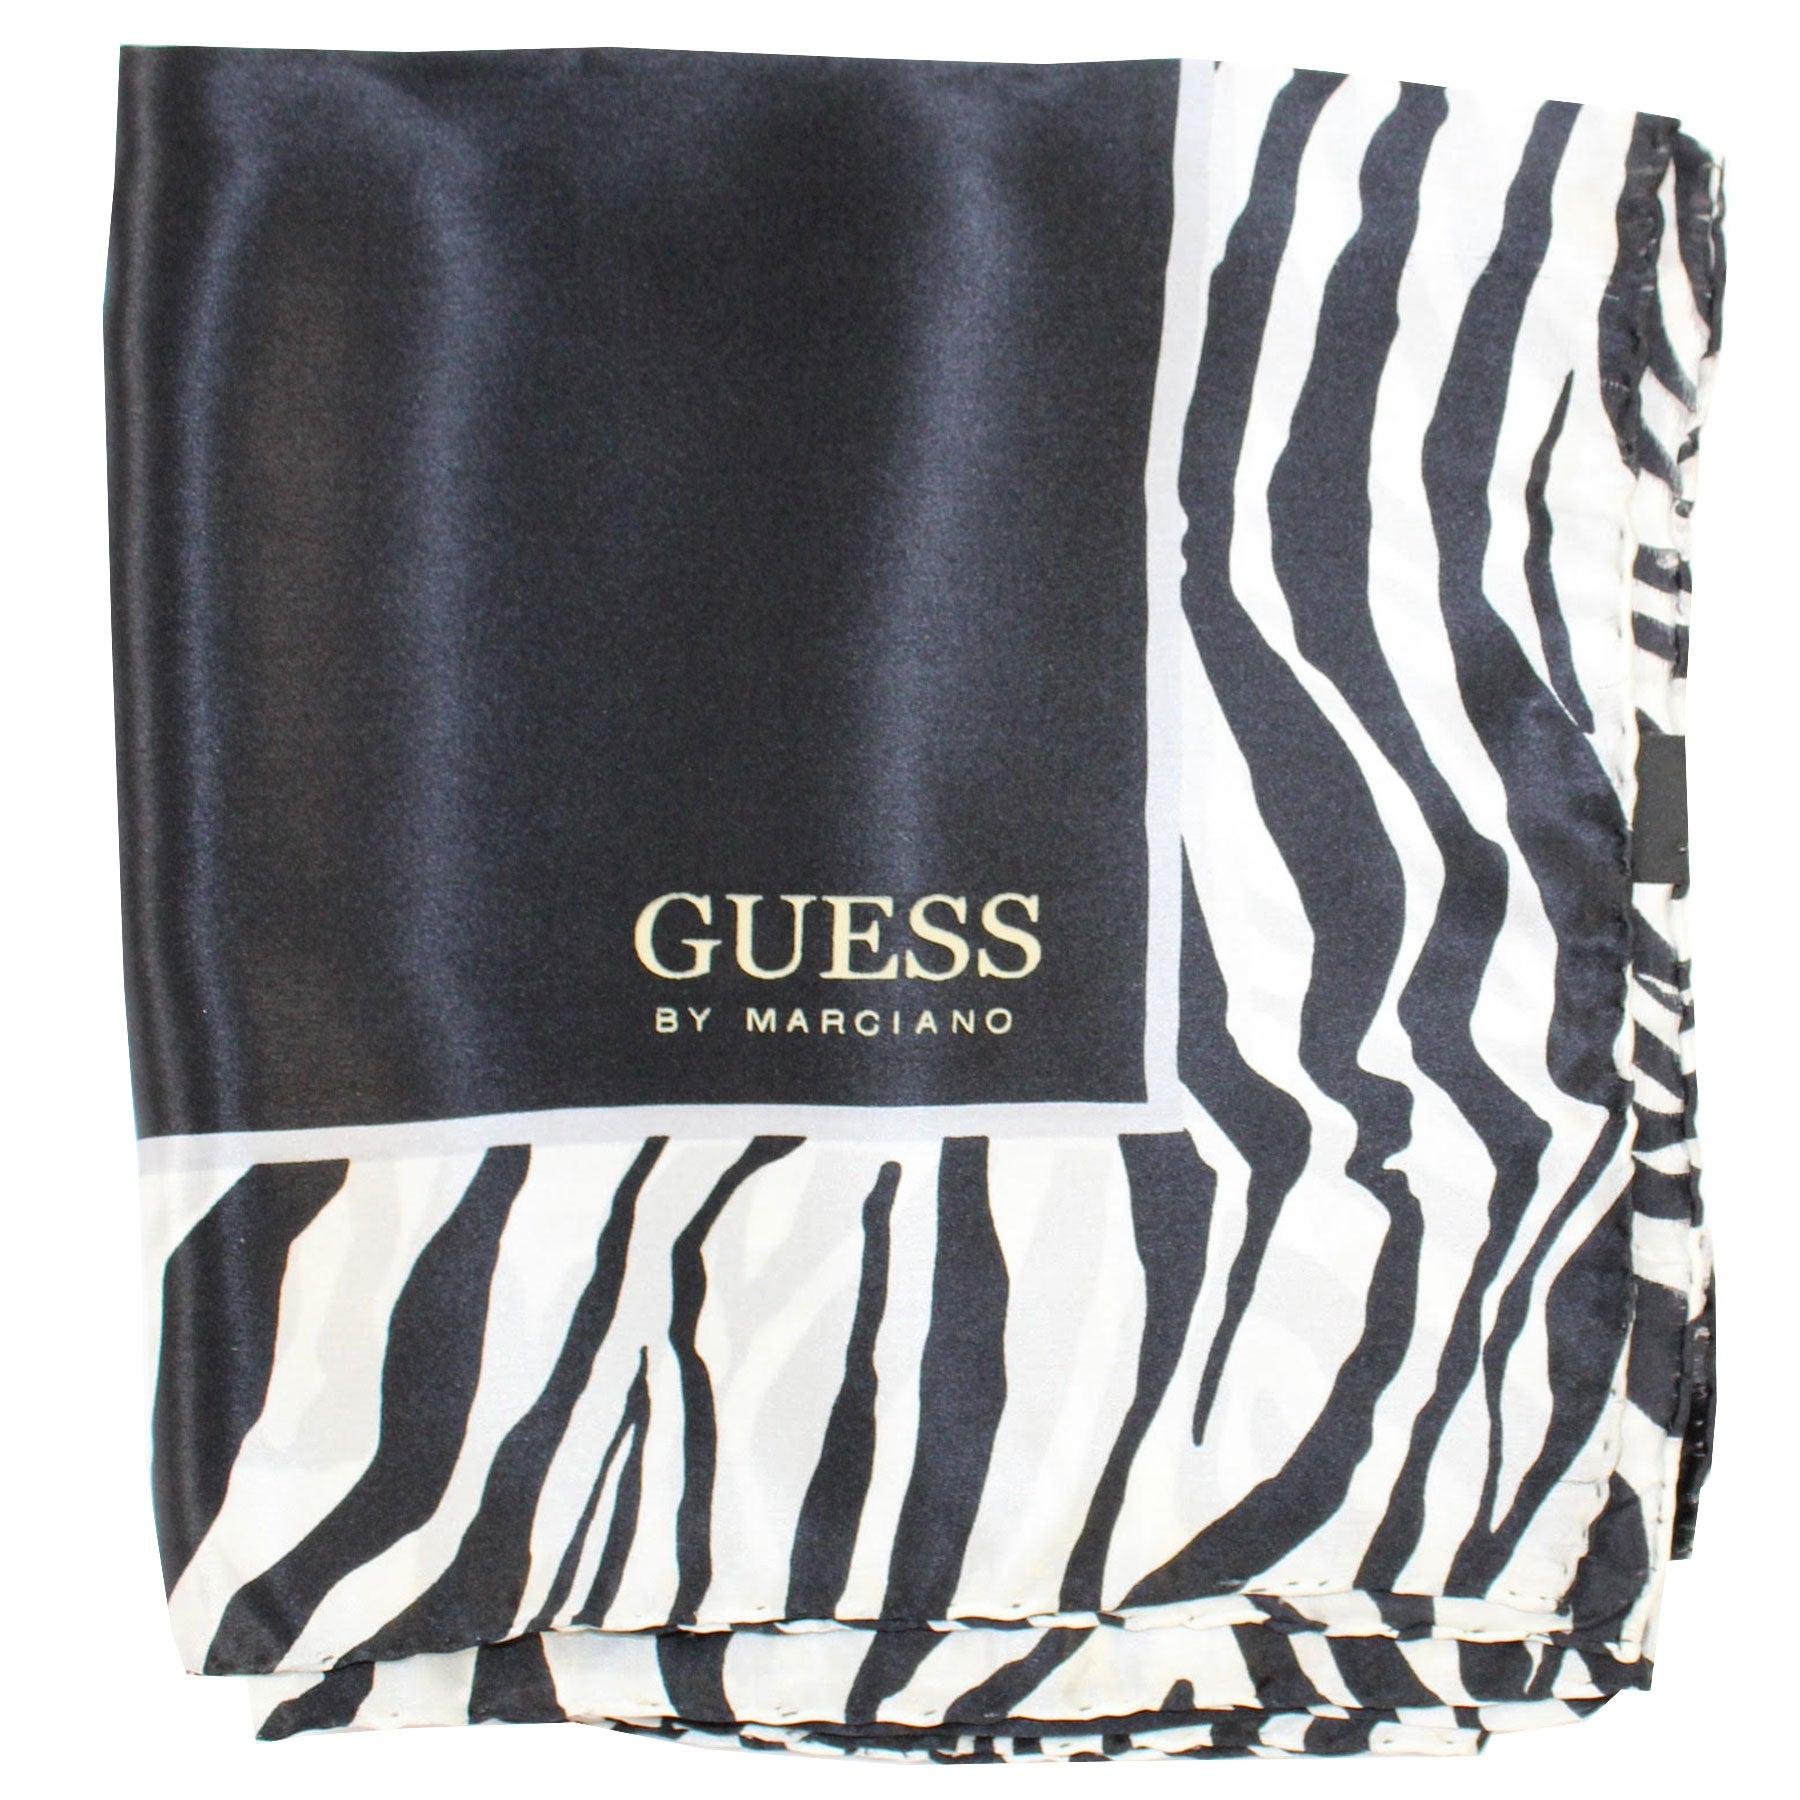 Guess Scarf Black White Zebra Design - Large Square Silk Foulard